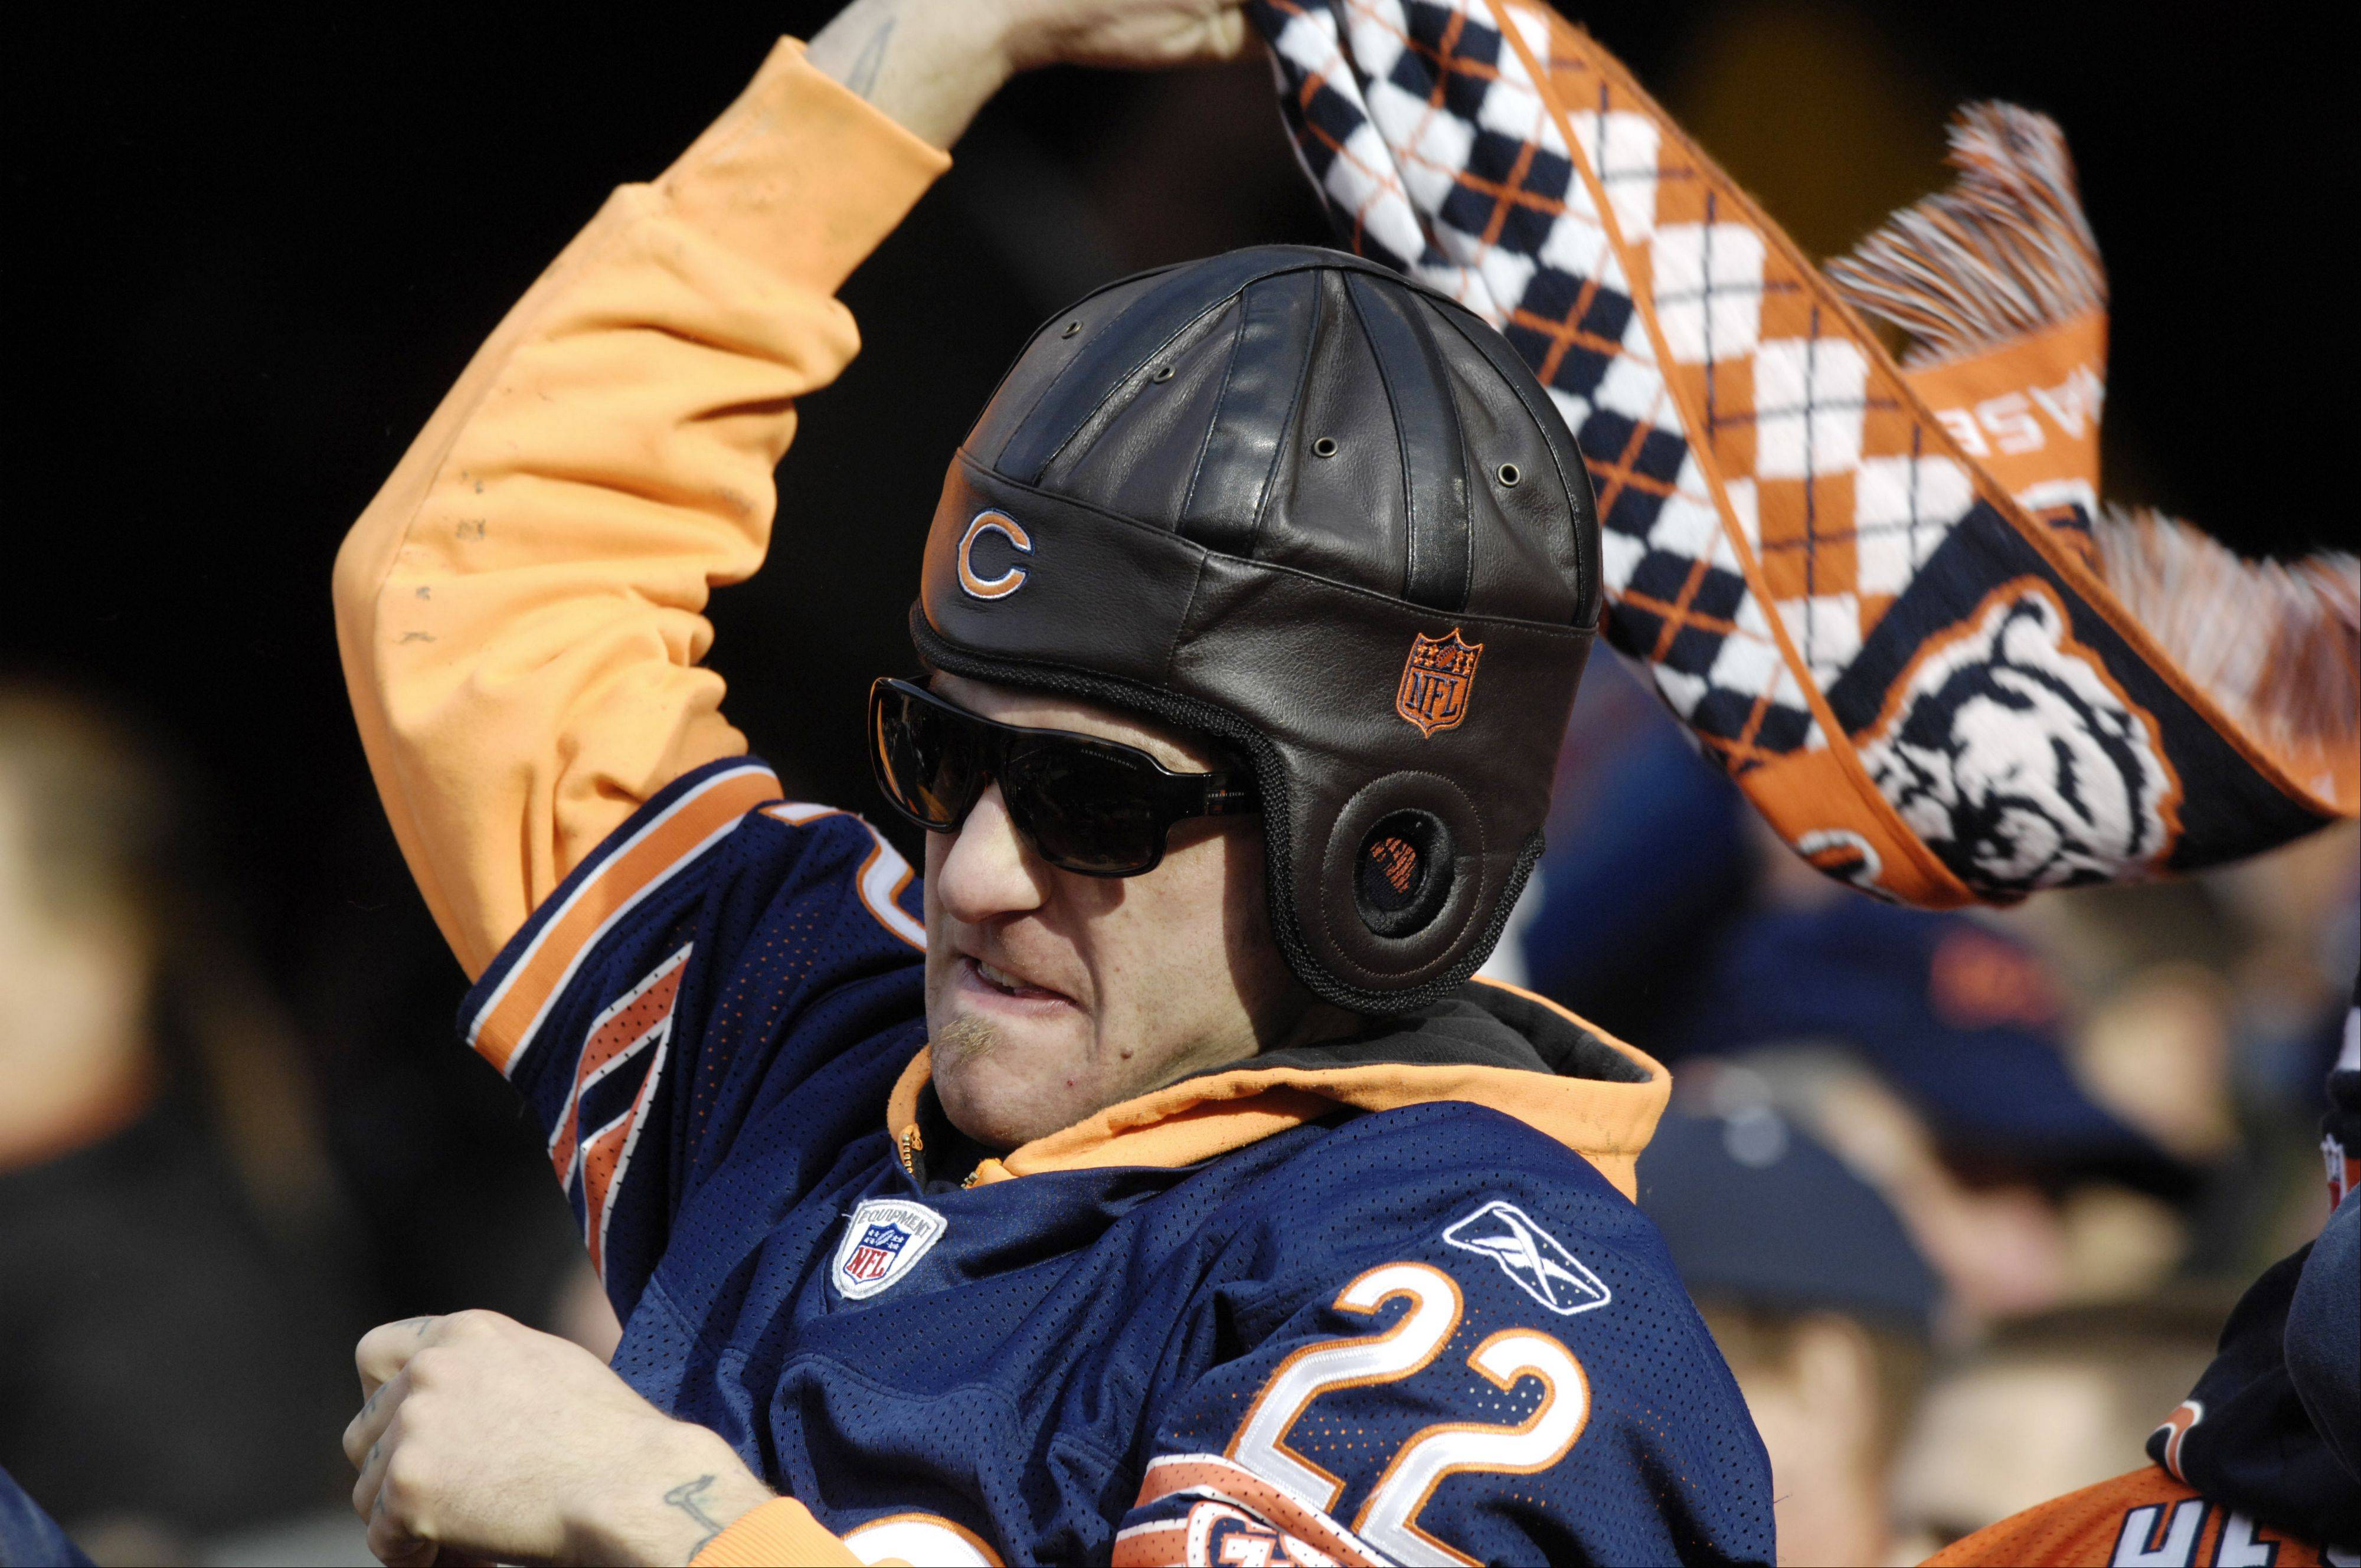 A Bears fan celebrates after a Minnesota Vikings touchdown was called back in favor of the Bears at Soldier Field Sunday.